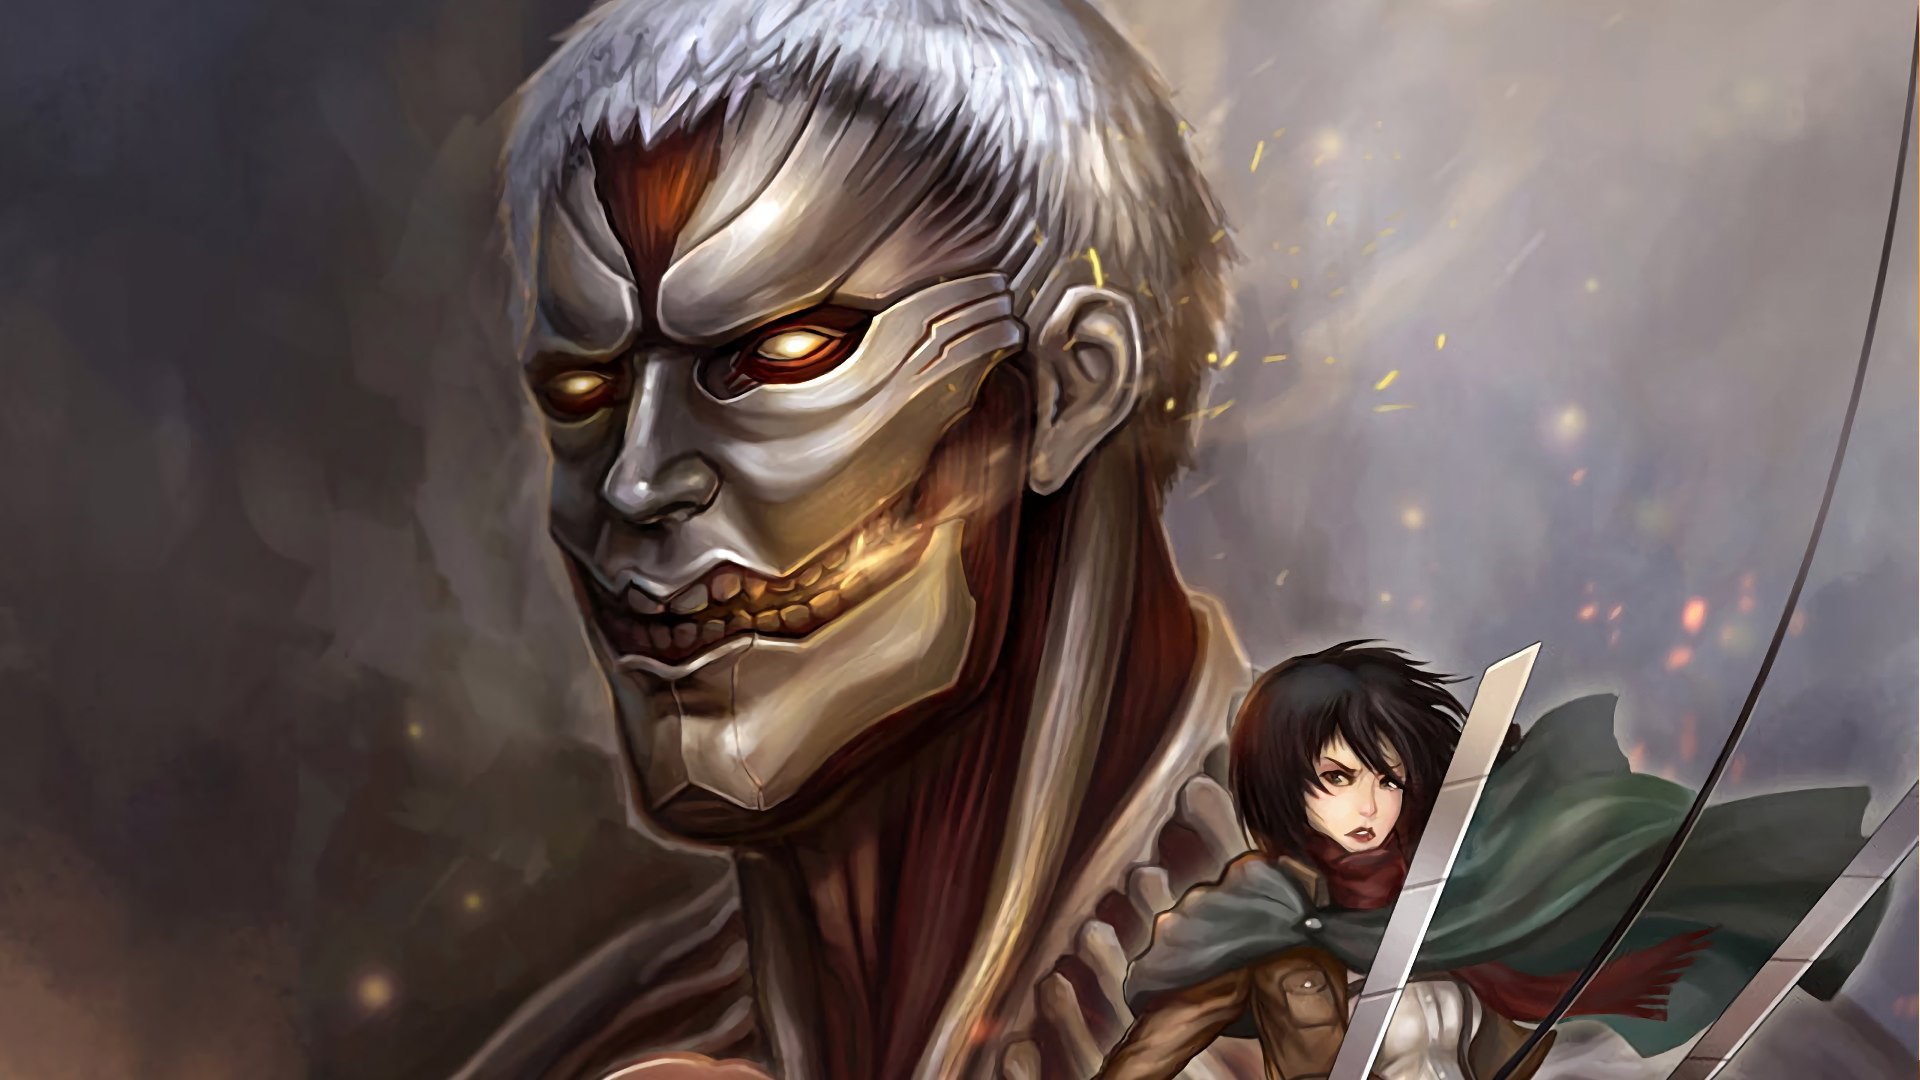 Attack on Titan Season 4 Episode 5 Release Date Delay, Spoilers, Preview and Watch Anime Online ...